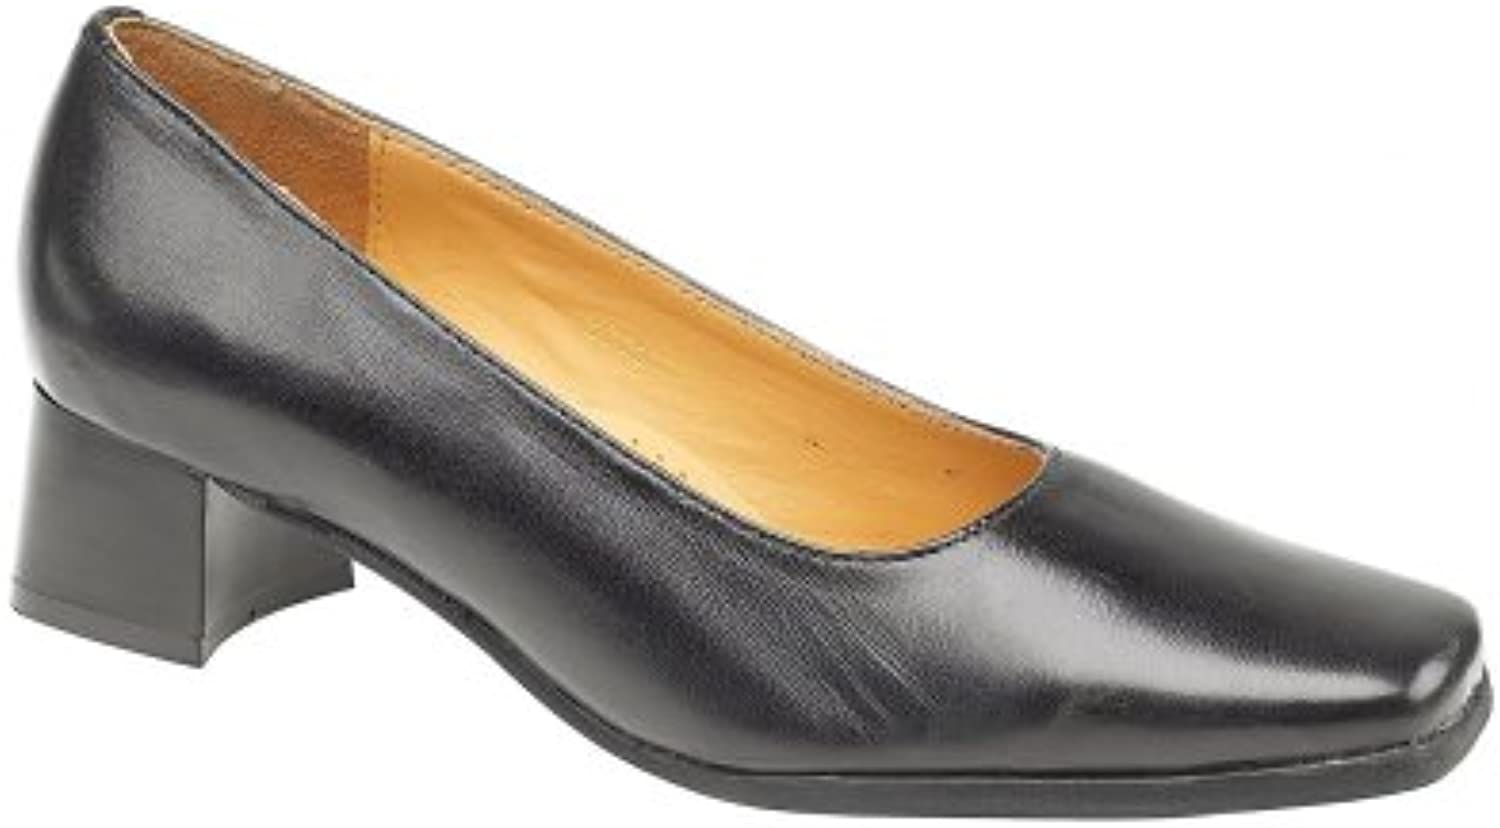 Amblers Slip-On Leather Lined Womens Shoes - Navy - Size 2 2.5